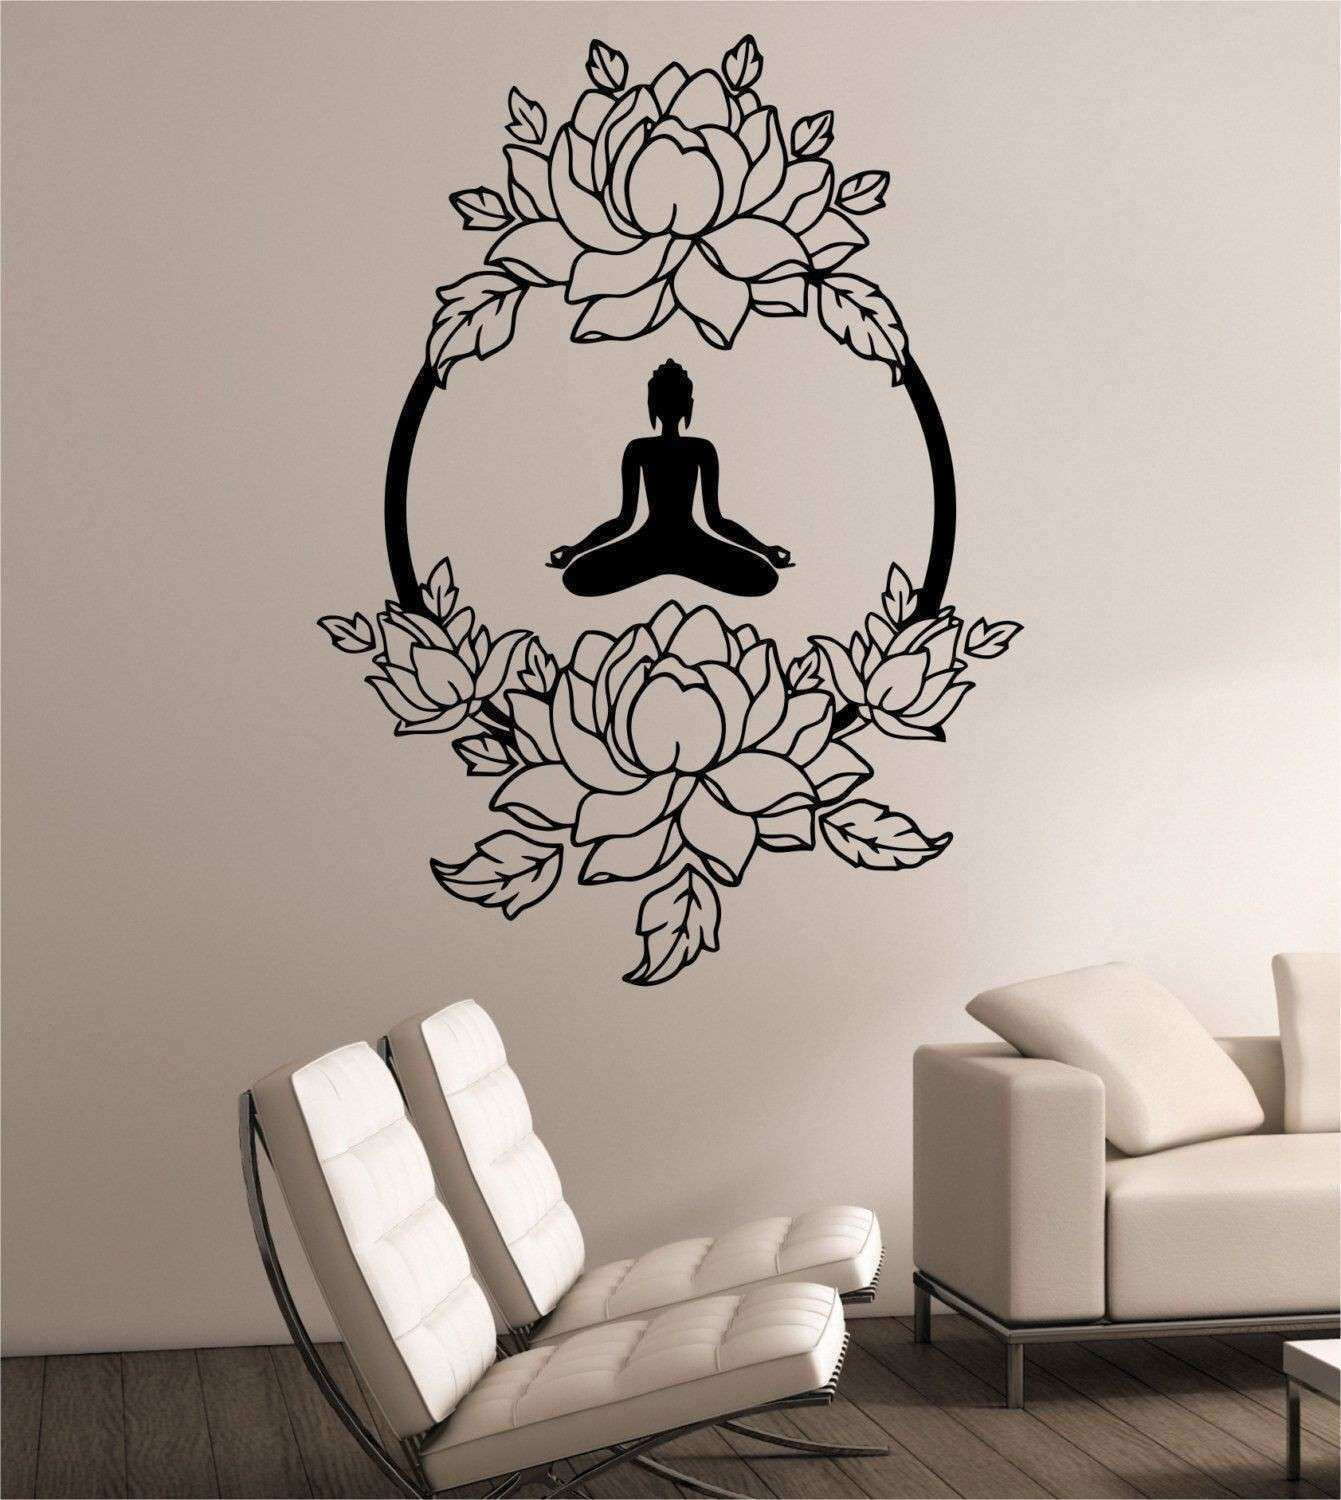 Wall Painting Designs for Living Room Lovely 34 Awesome